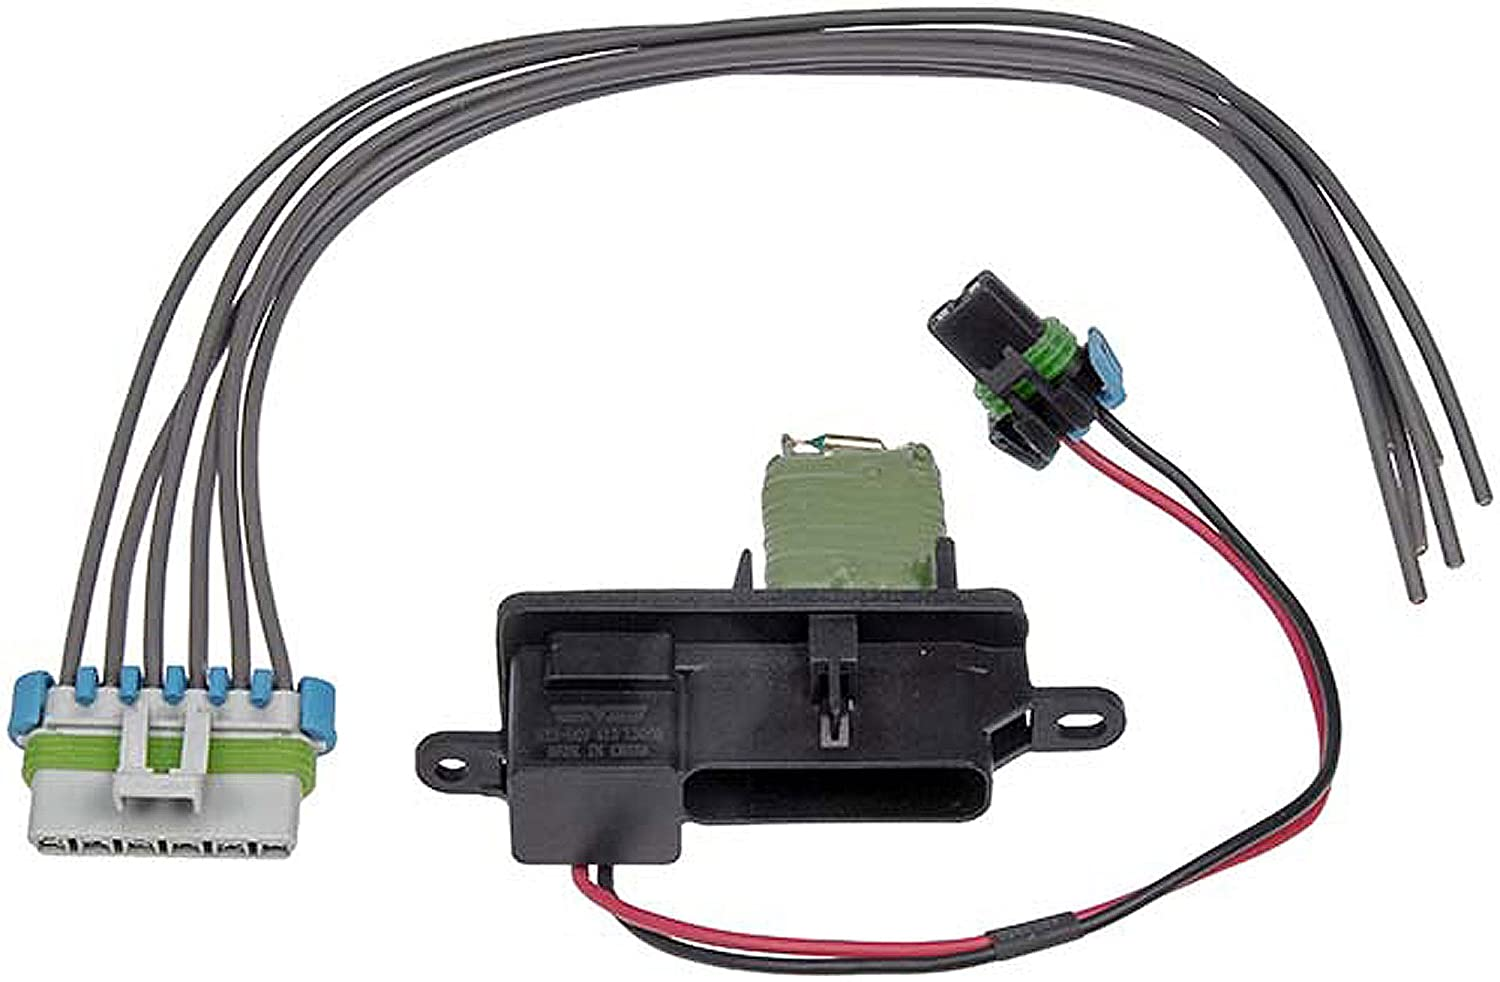 712Kx95bpxL._SL1500_ amazon com apdty 084518 blower motor resistor fan speed control w GMC Sierra Sierra 3500 at gsmx.co